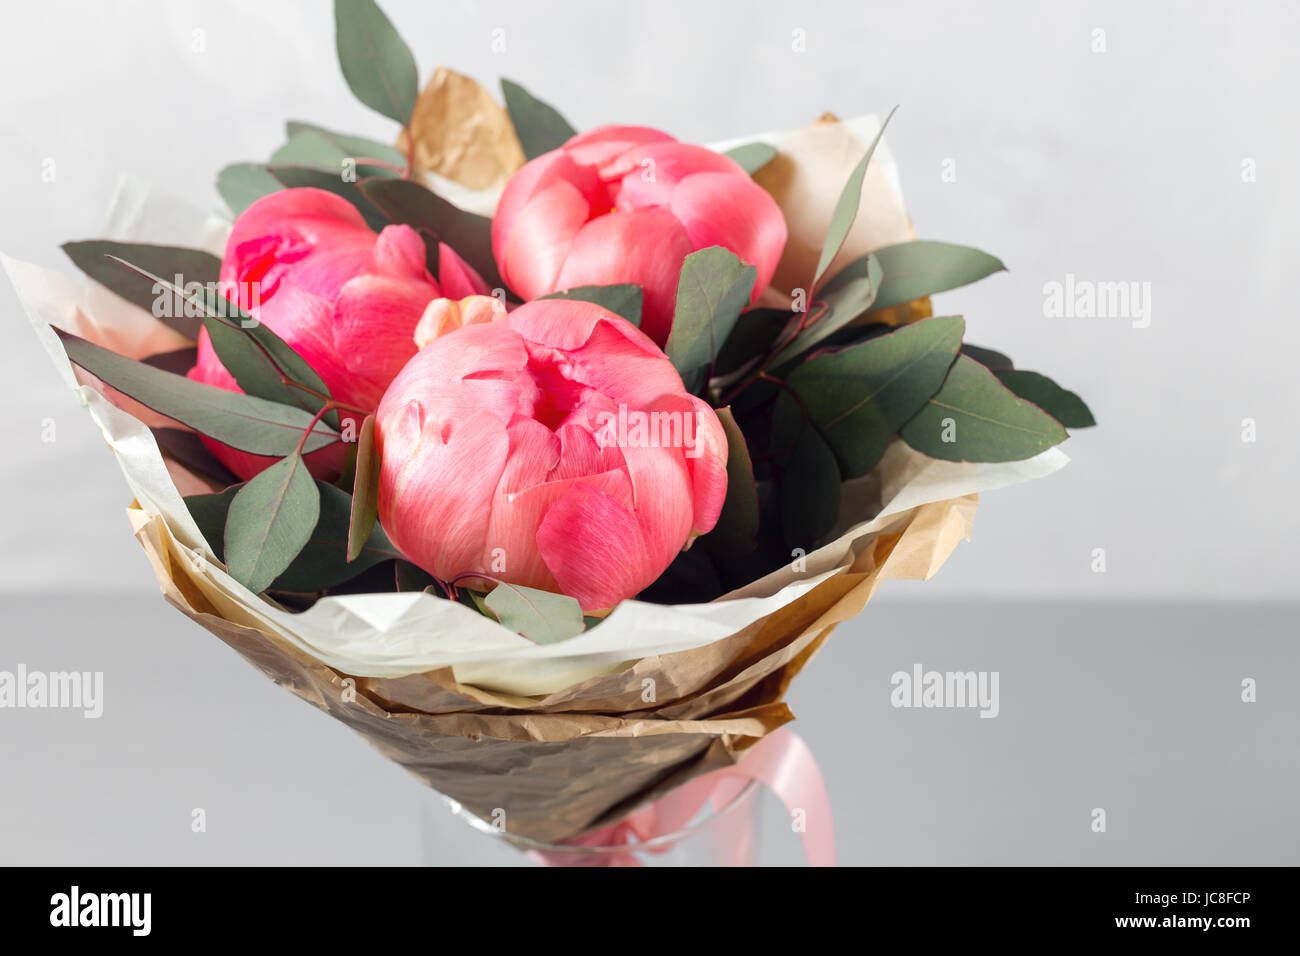 vase of peonies in the foreground. Workshop florist. Stock Photo